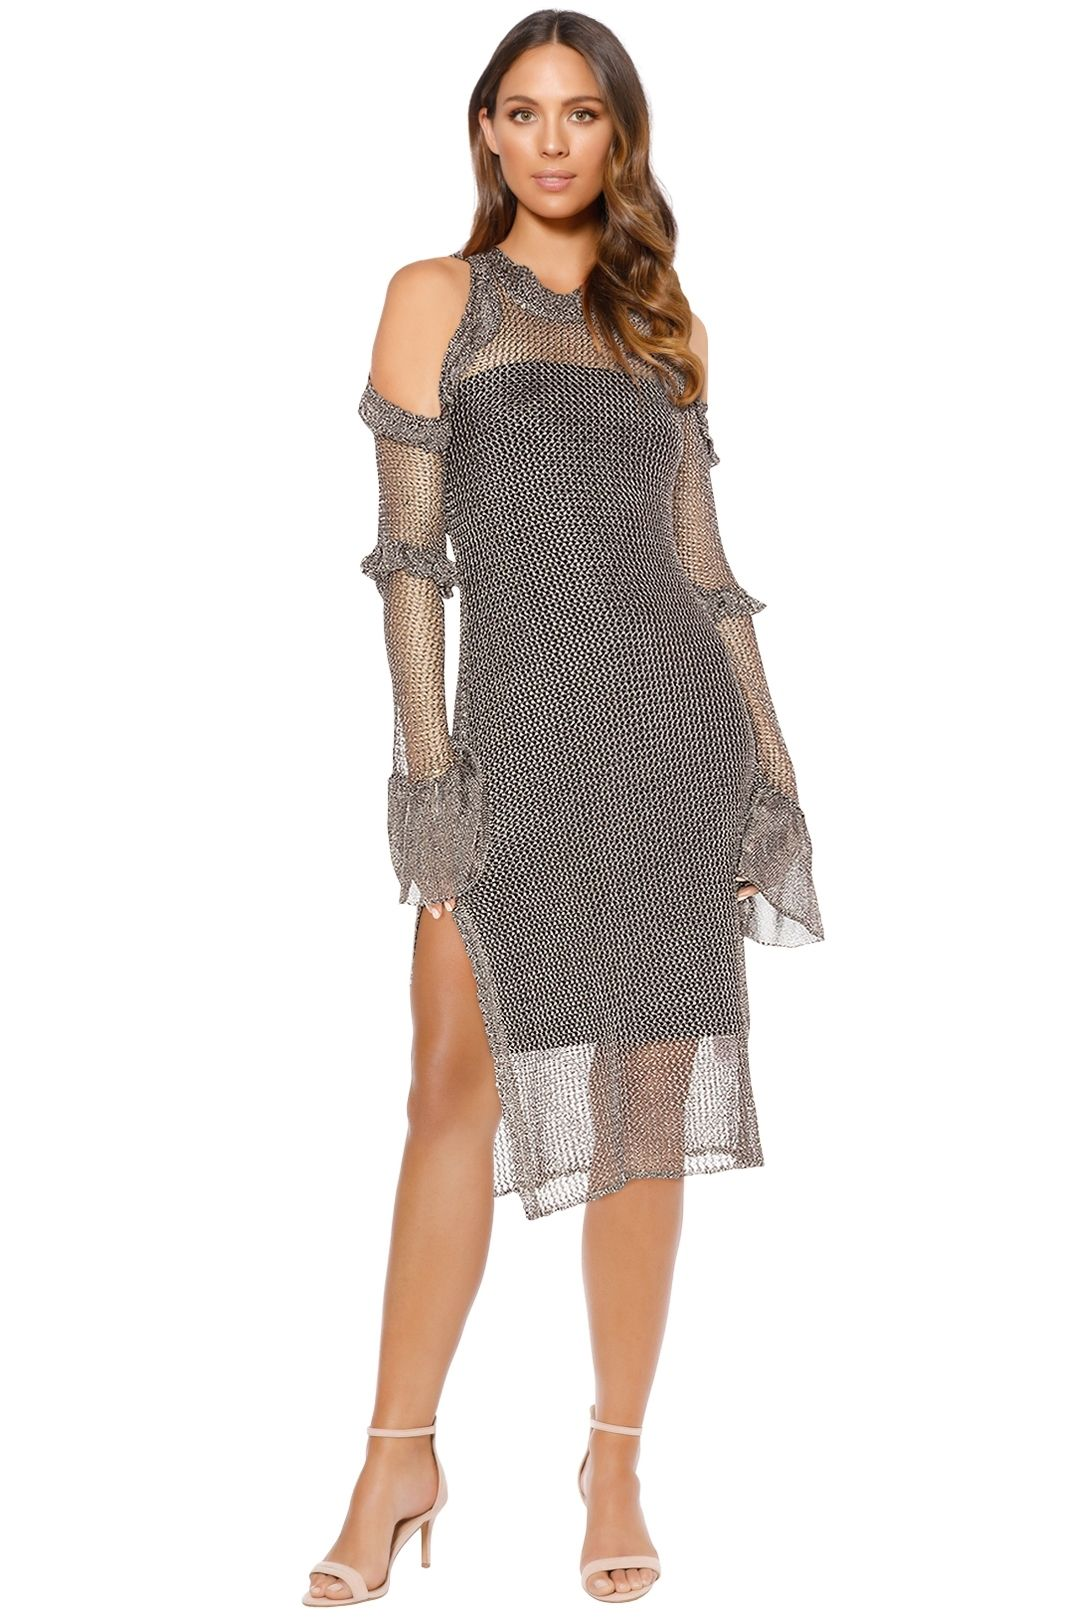 We Are Kindred - Annastasia Cold Shoulder Dress - Pewter - Front